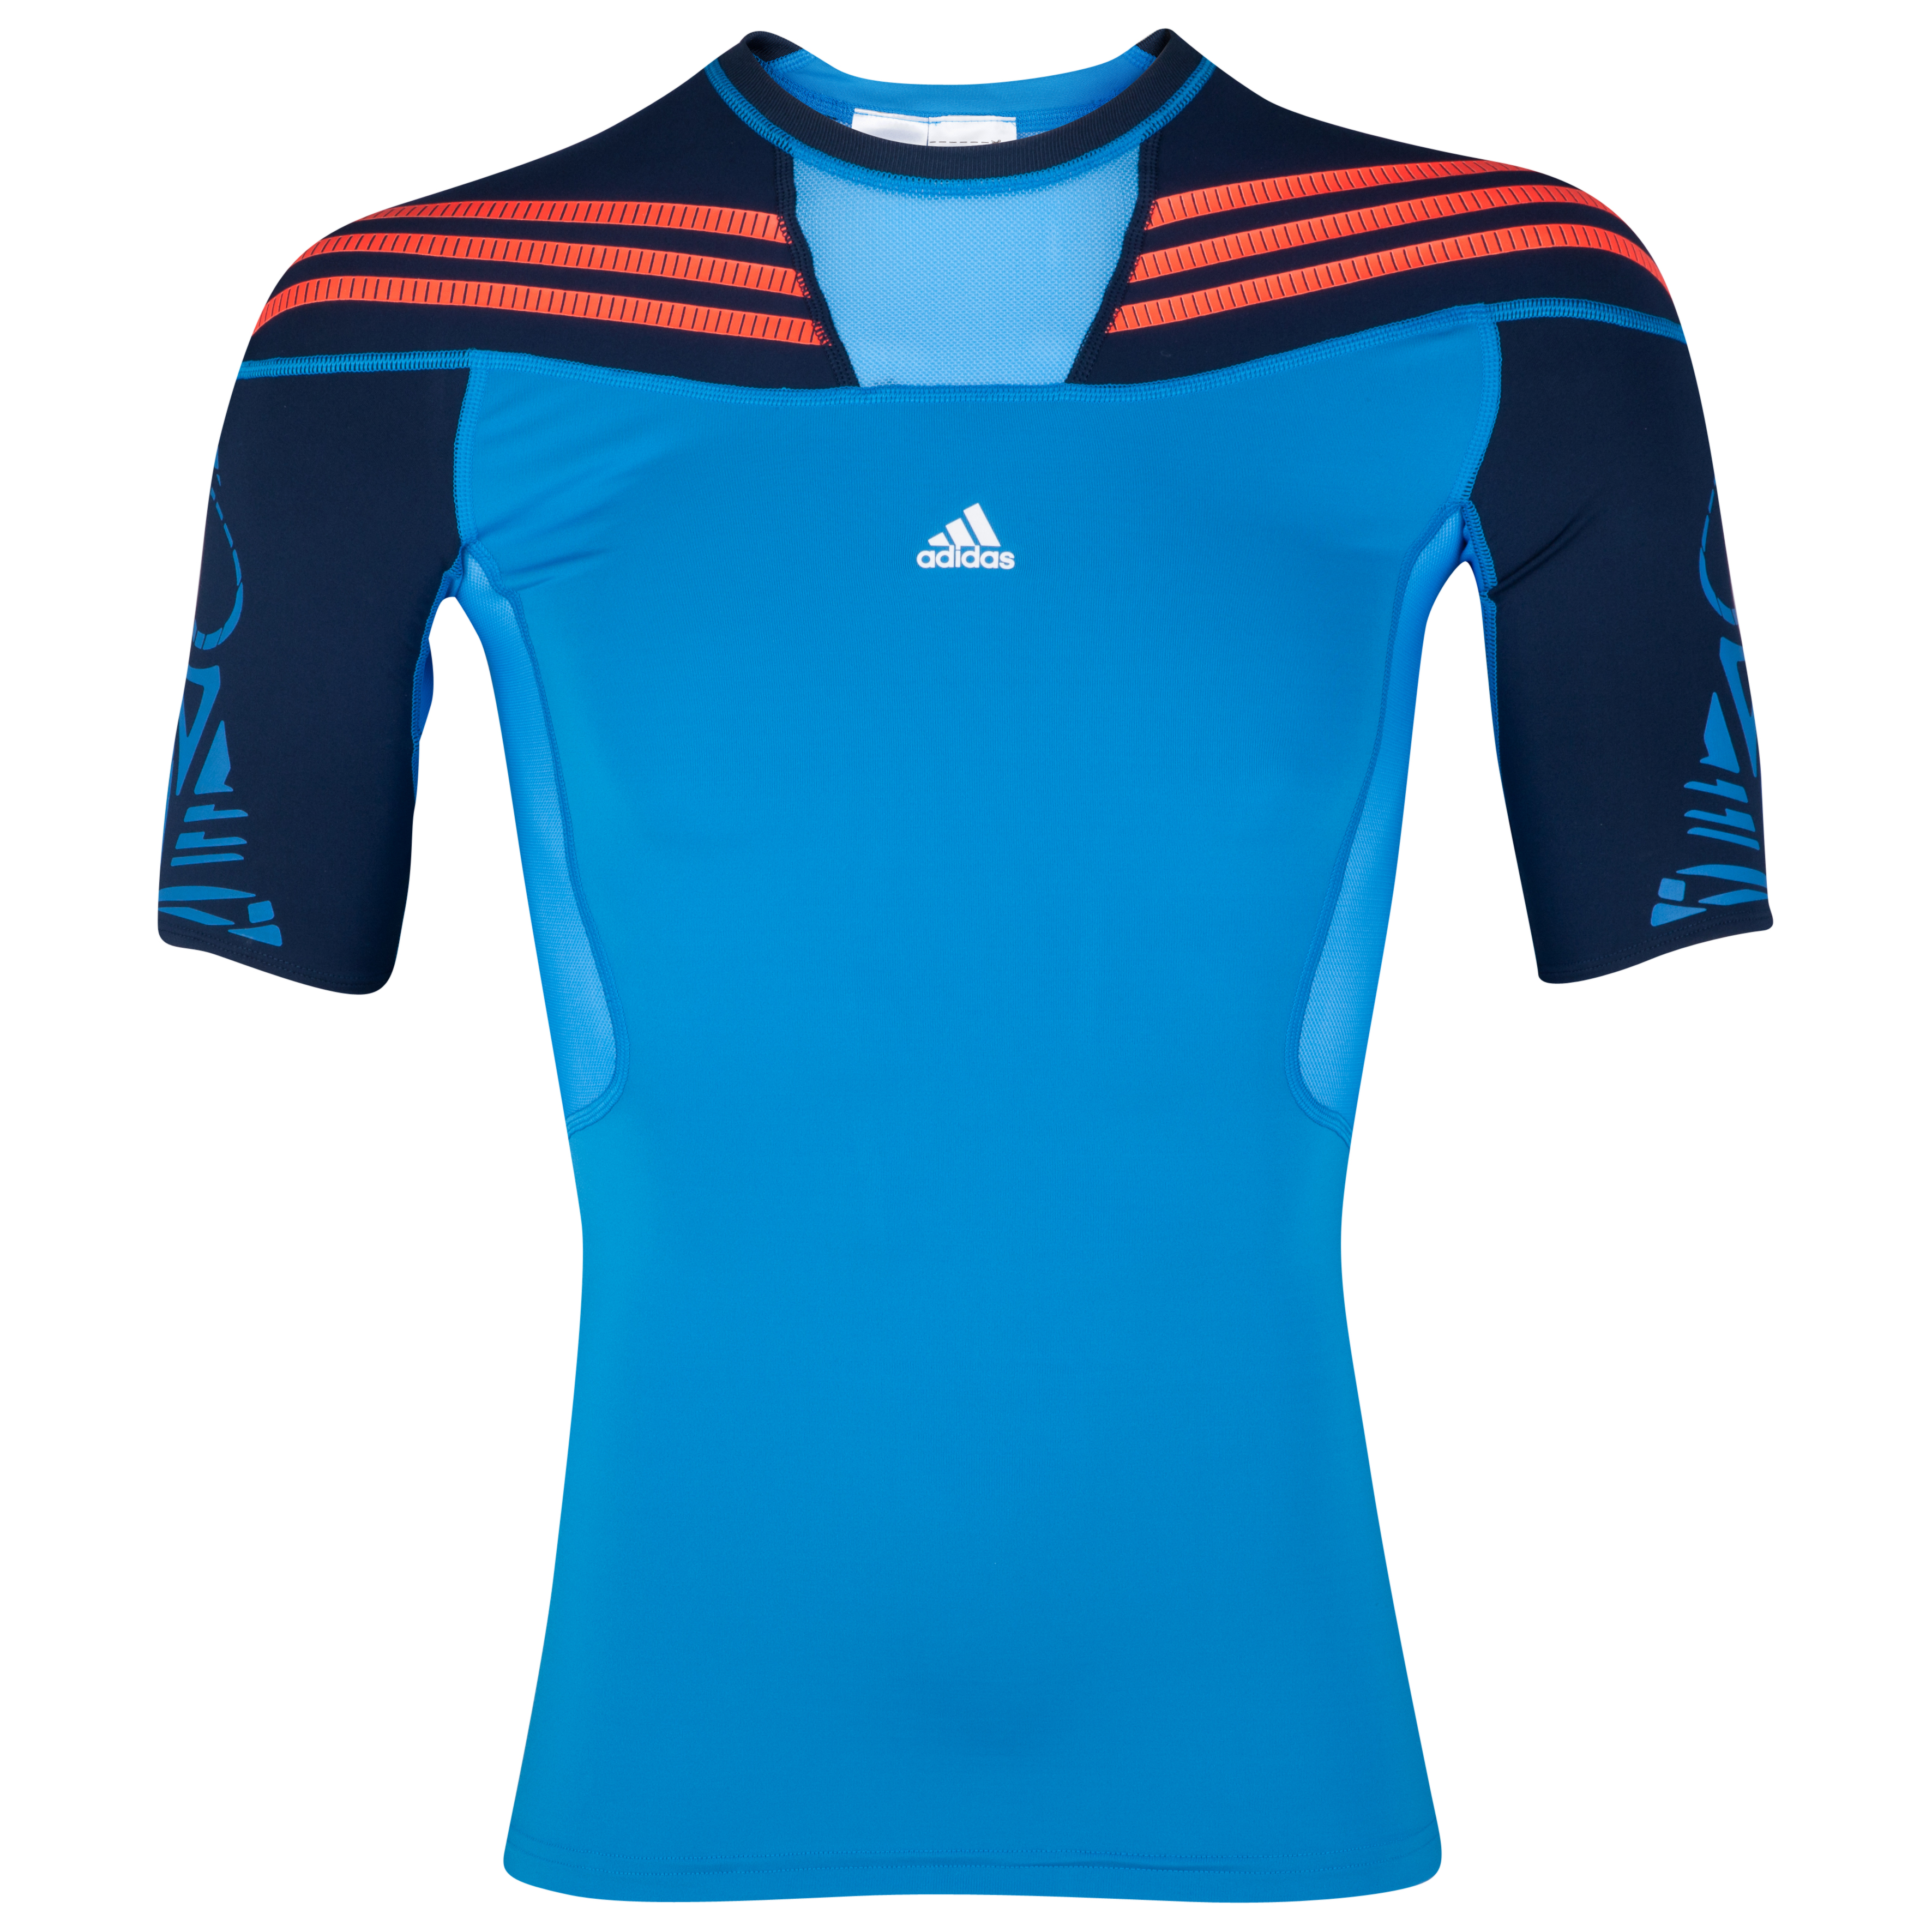 adidas TechFit Preperation Baselayer Top - Short Sleeve - Bright Blue/Collegiate Navy/Infrared